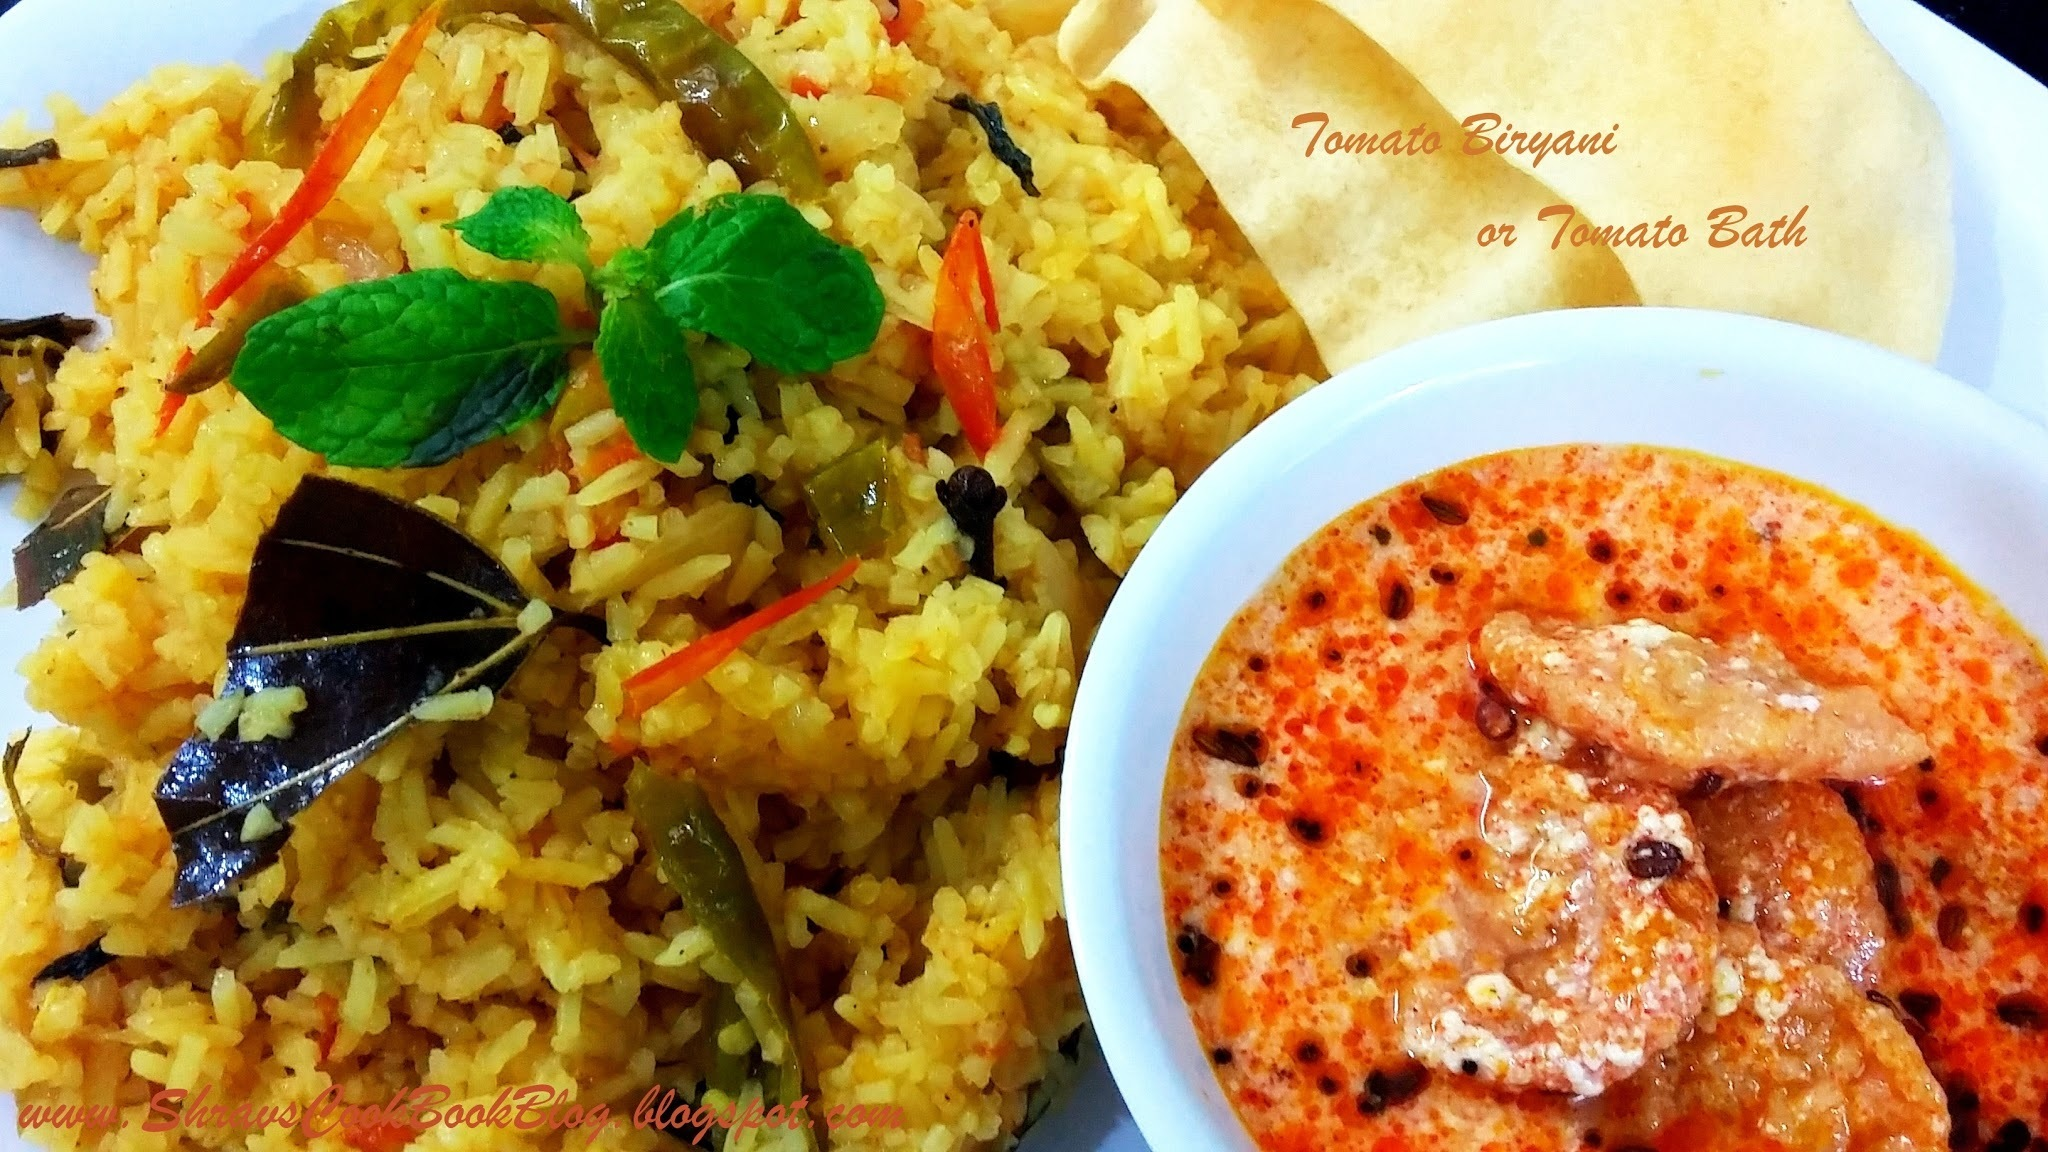 Tomato Biryani - How to make Tomato Rice Biryani